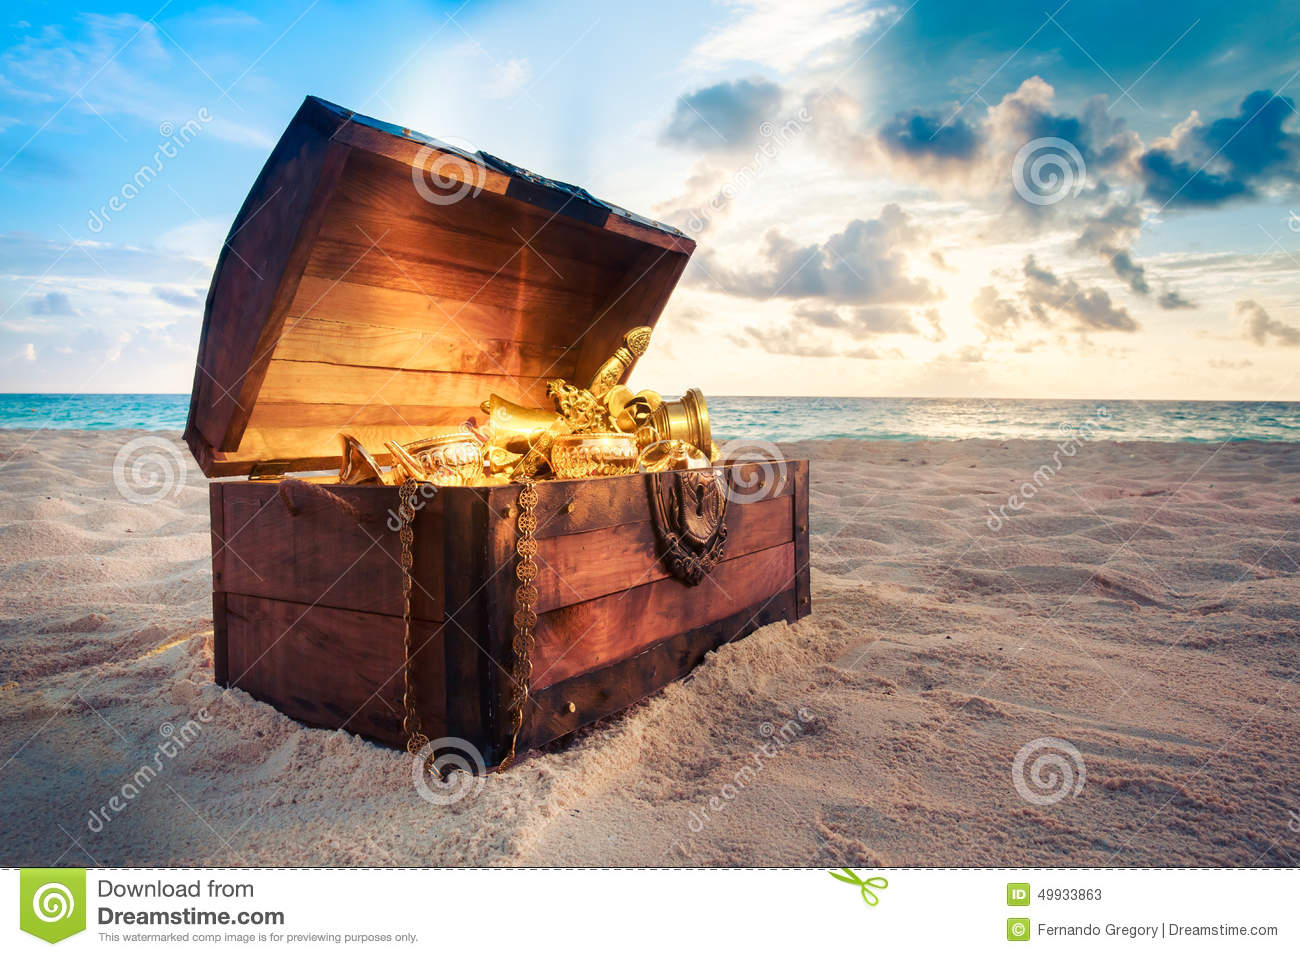 Toy Treasure Chest Beach : Open treasure chest on the beach stock image of